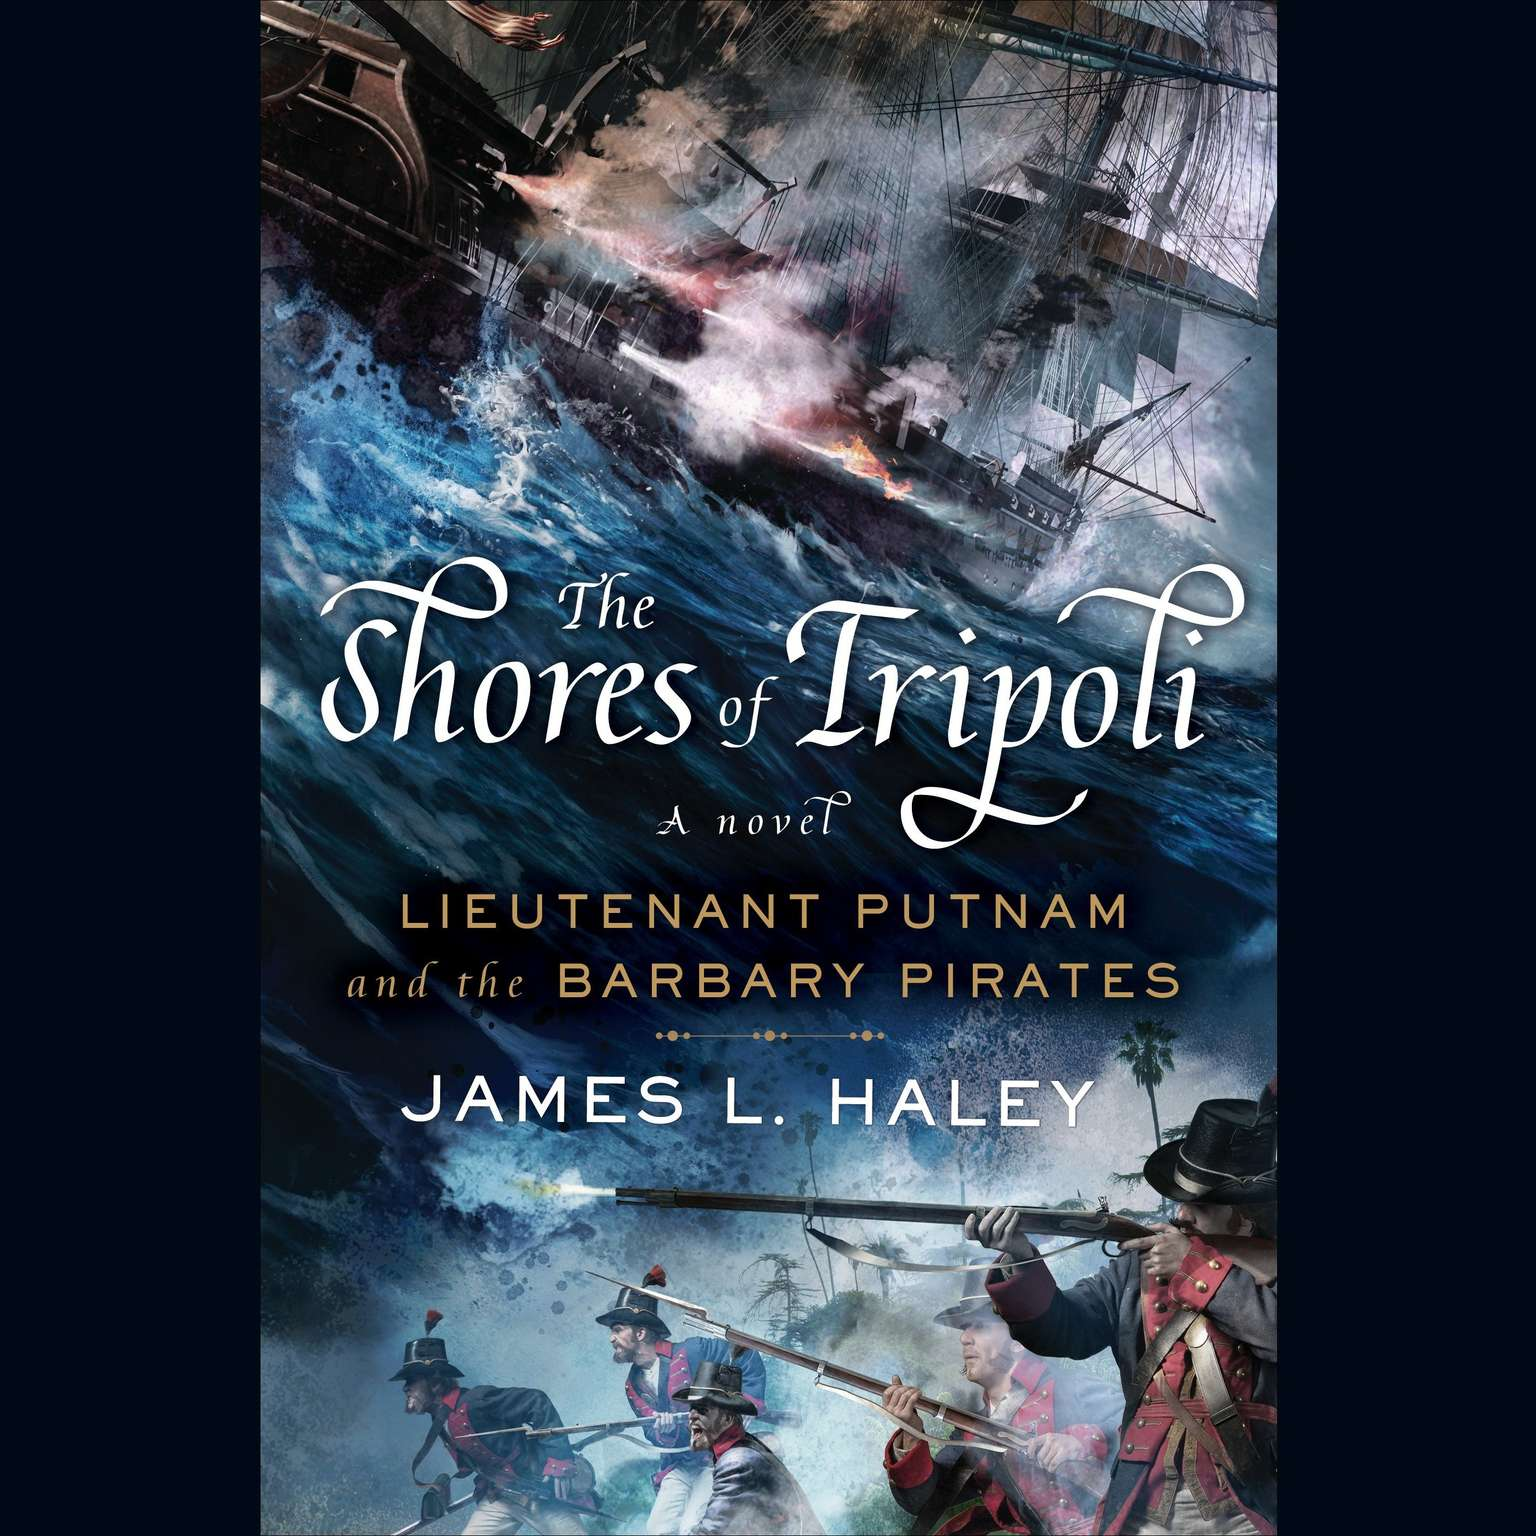 Printable The Shores of Tripoli: Lieutenant Putnam and the Barbary Pirates Audiobook Cover Art